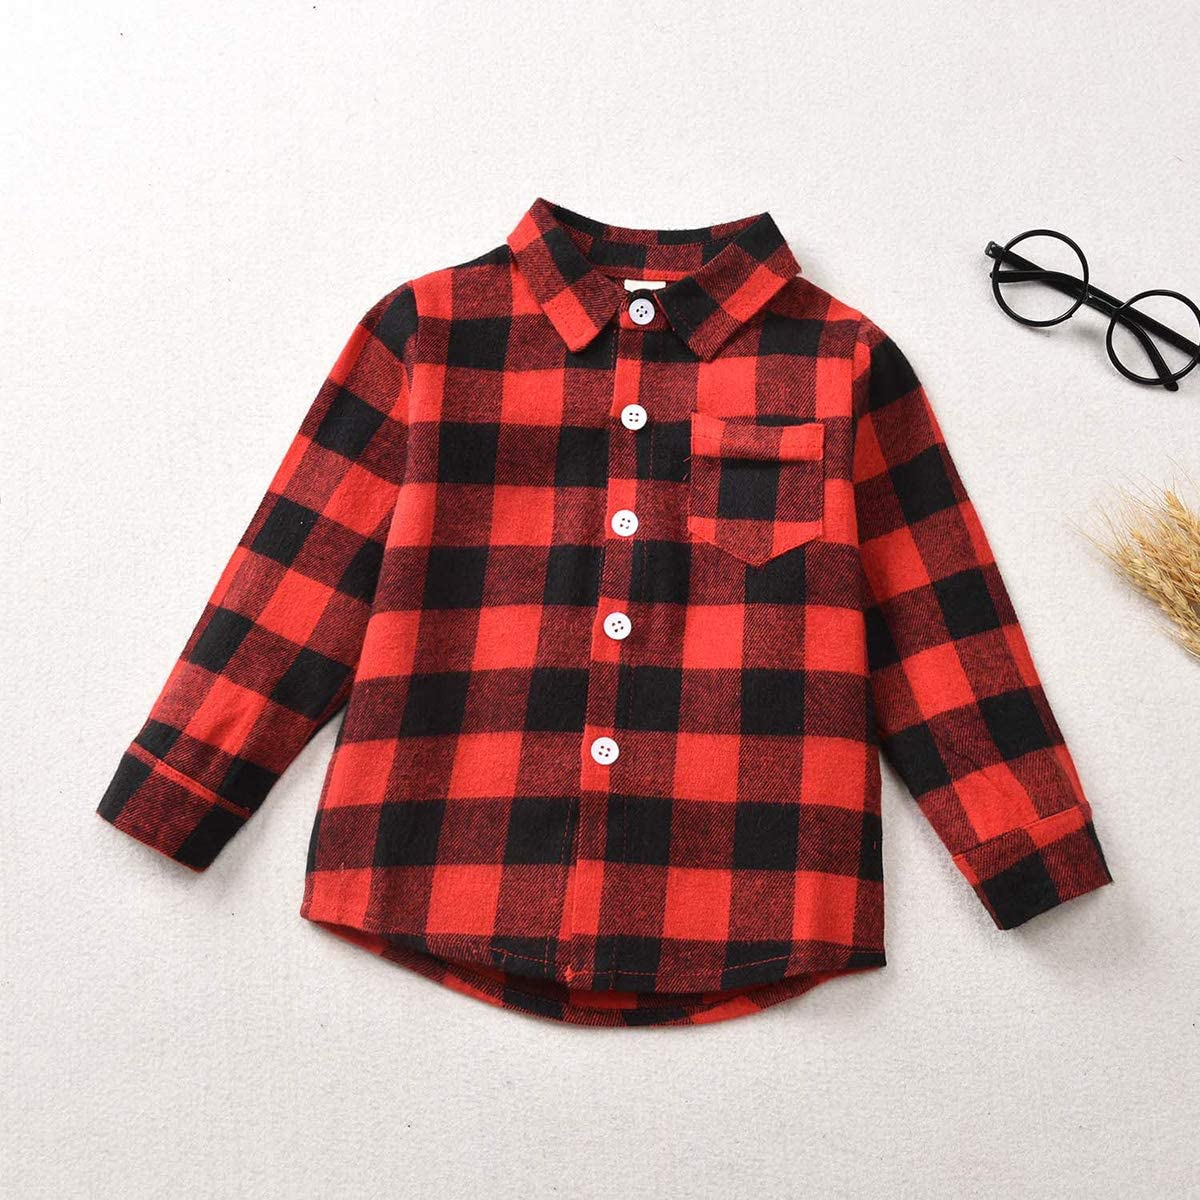 Toddler Baby Boy Girl Plaid Shirt Long Sleeve Button Down Red Flannel Tops Clothes